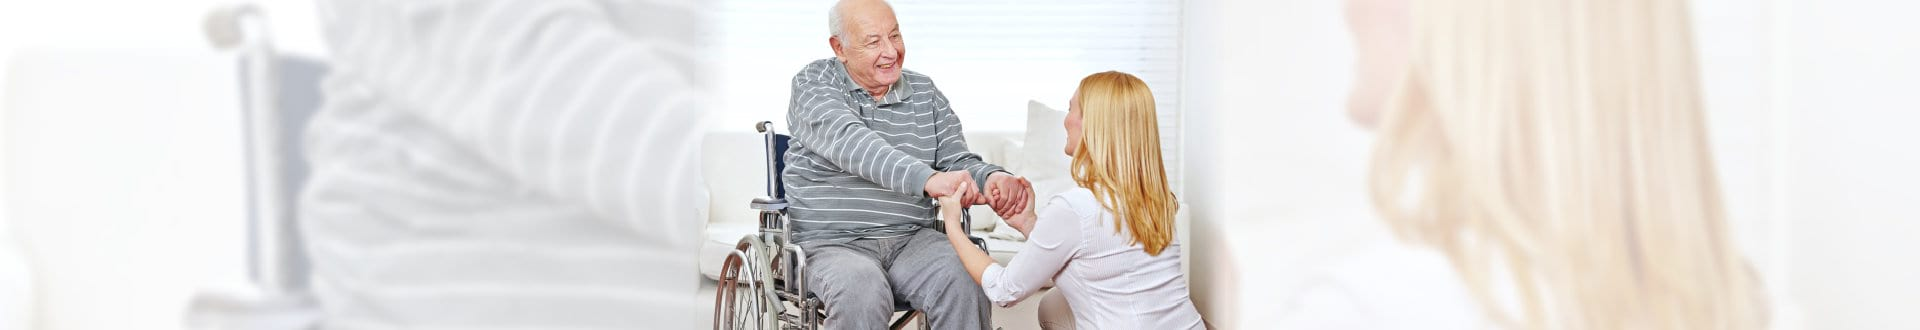 caregiver and senior man holding hands